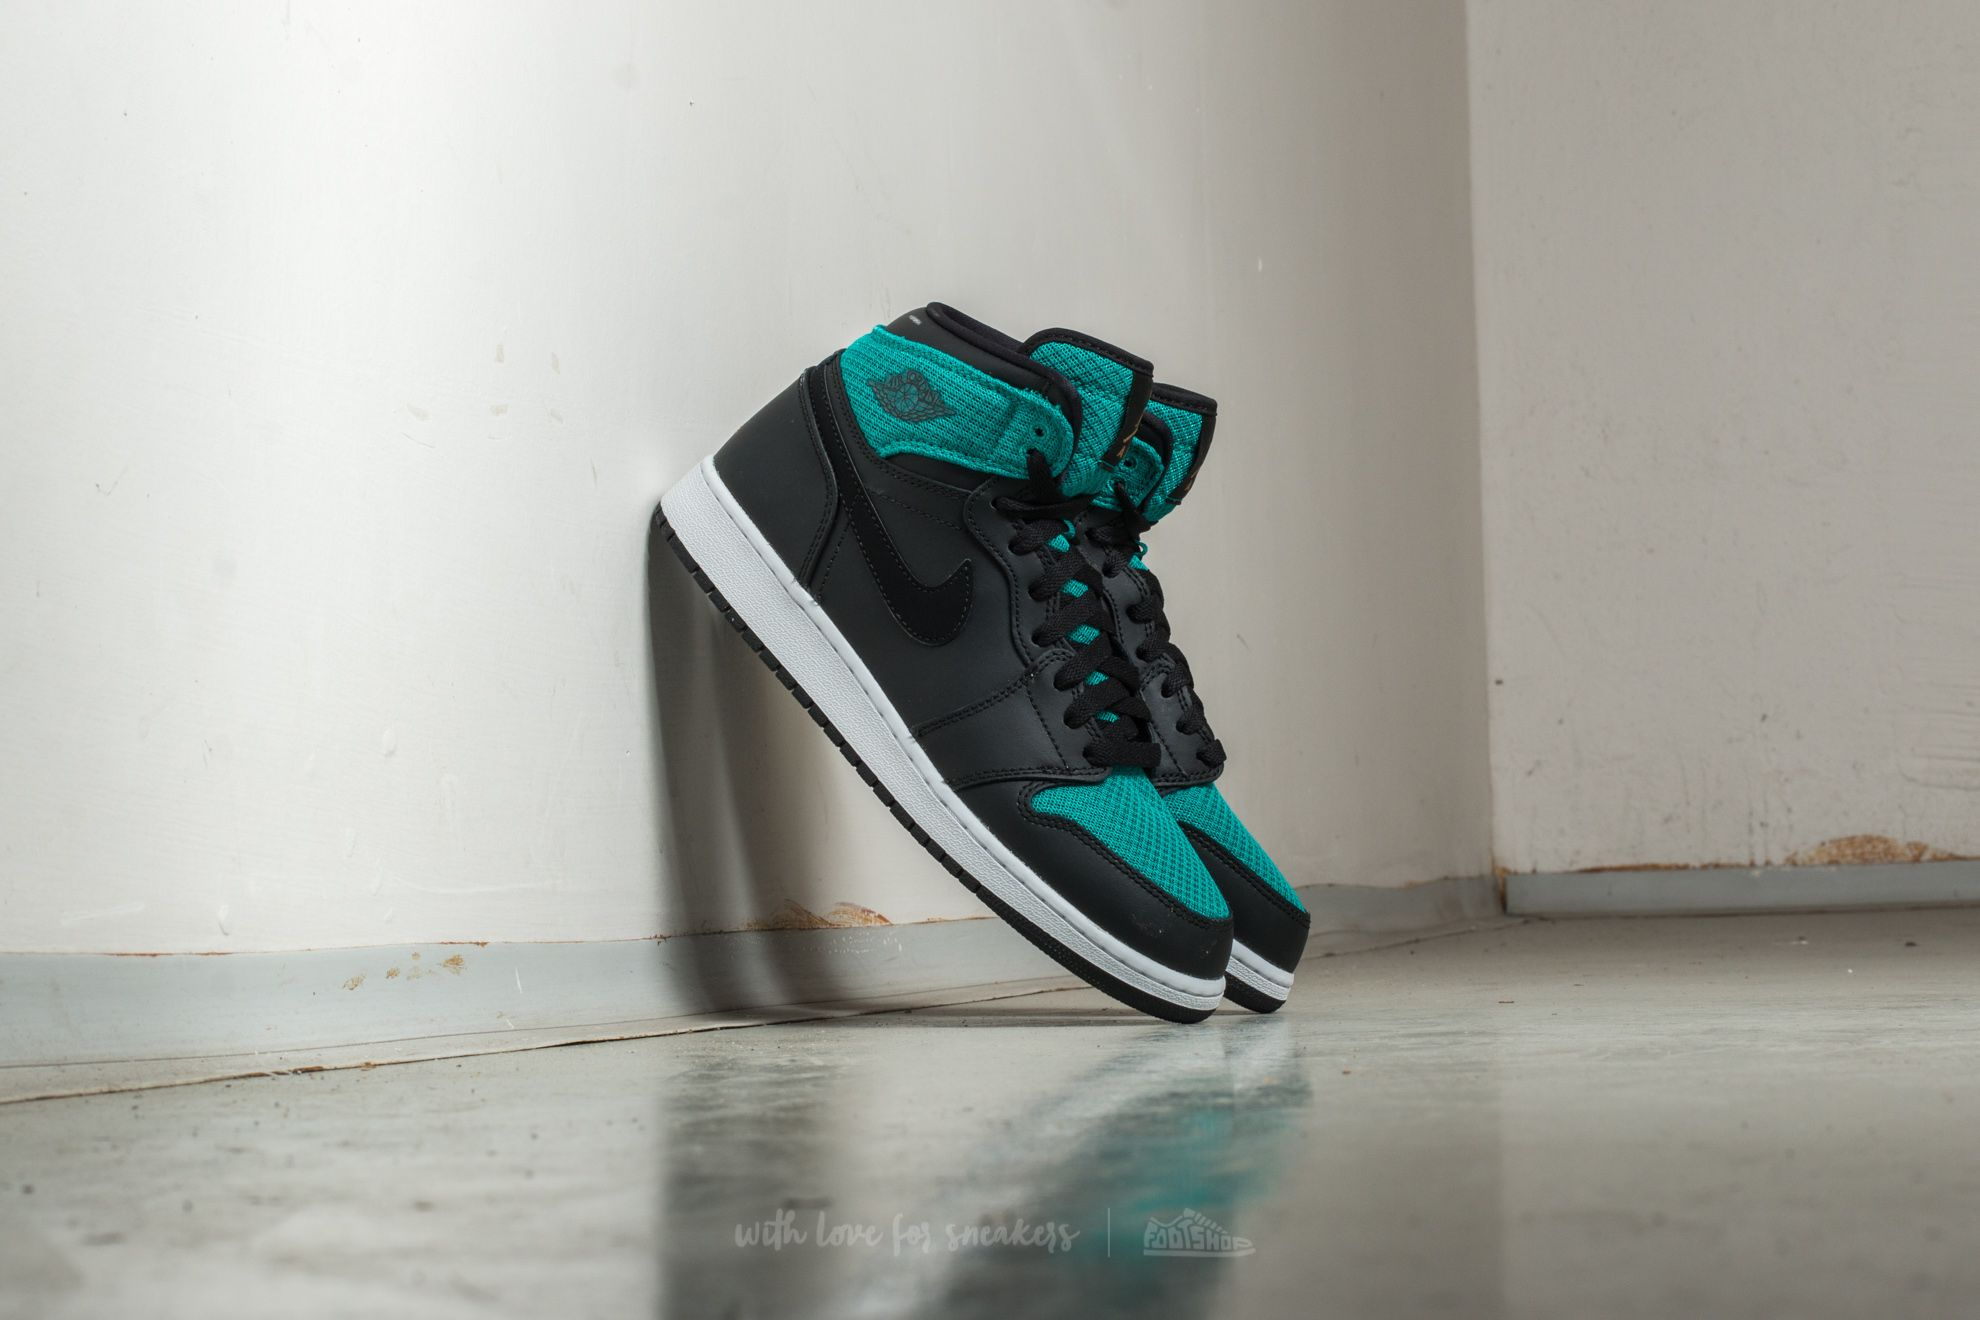 Air Jordan 1 Retro High (GG) Black/ Metallic Gold-Rio Teal